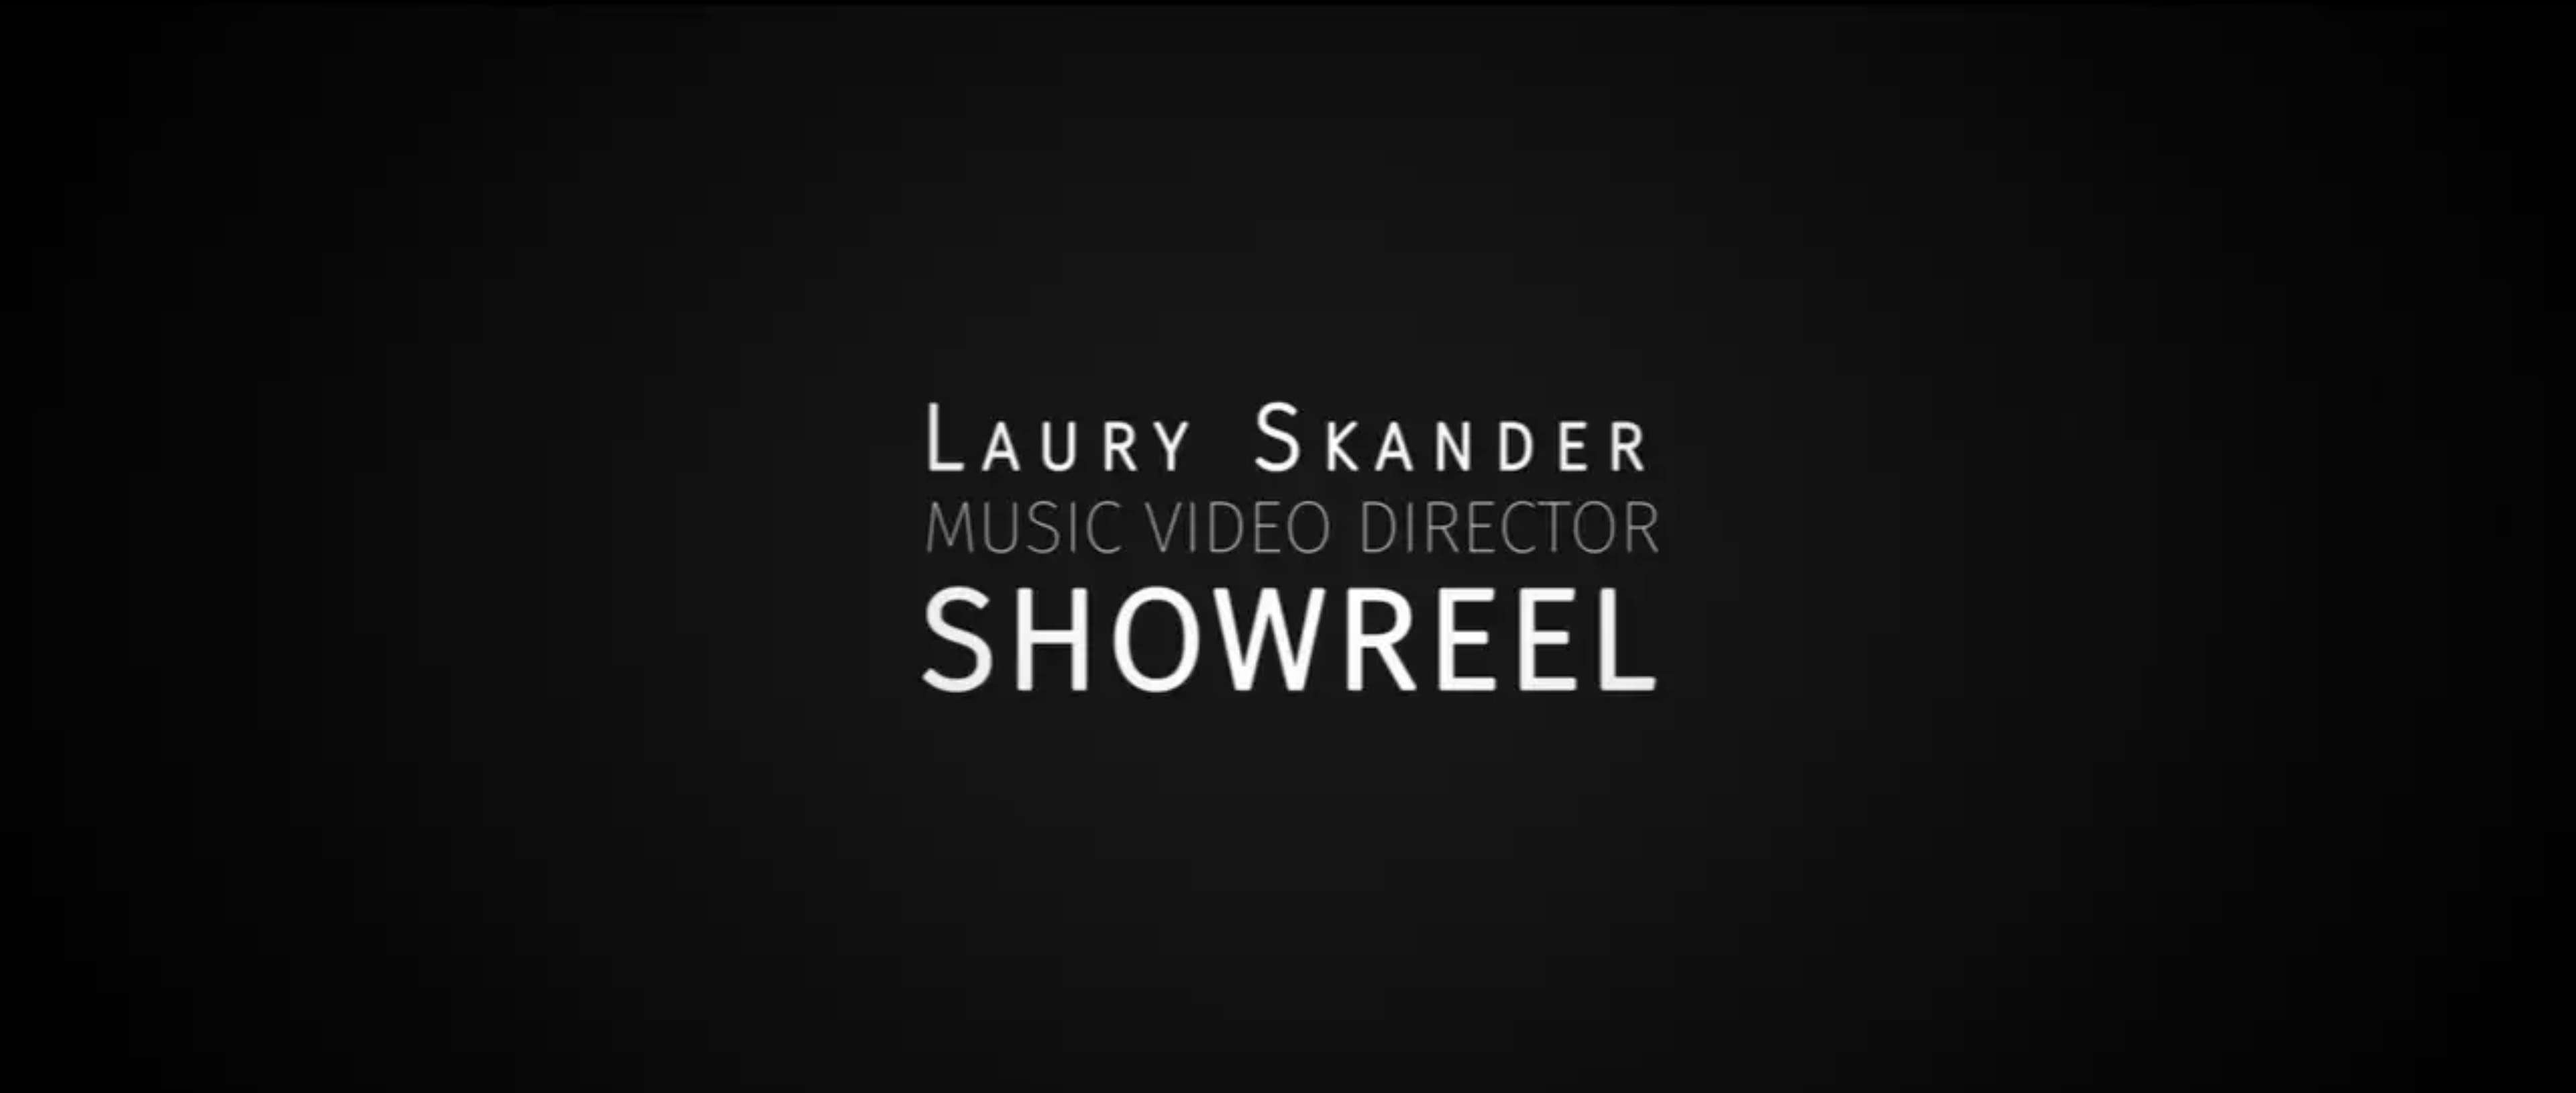 SHOWREEL MUSIC VIDEO